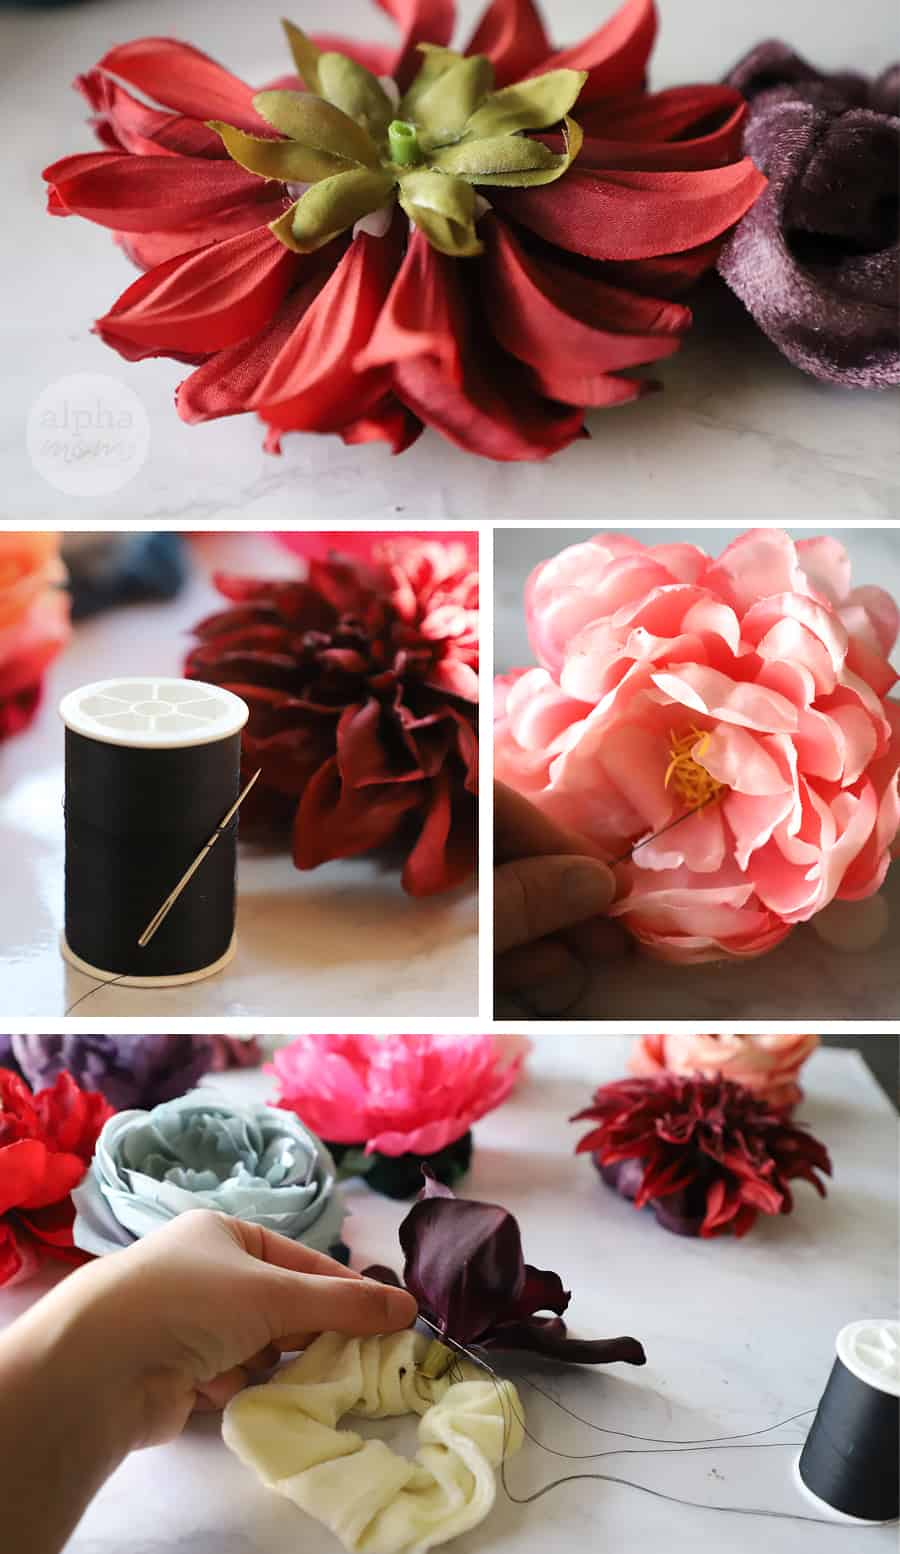 five close-up photos faux-flower and sewing supplies with flower being sewn onto hair scrunchie